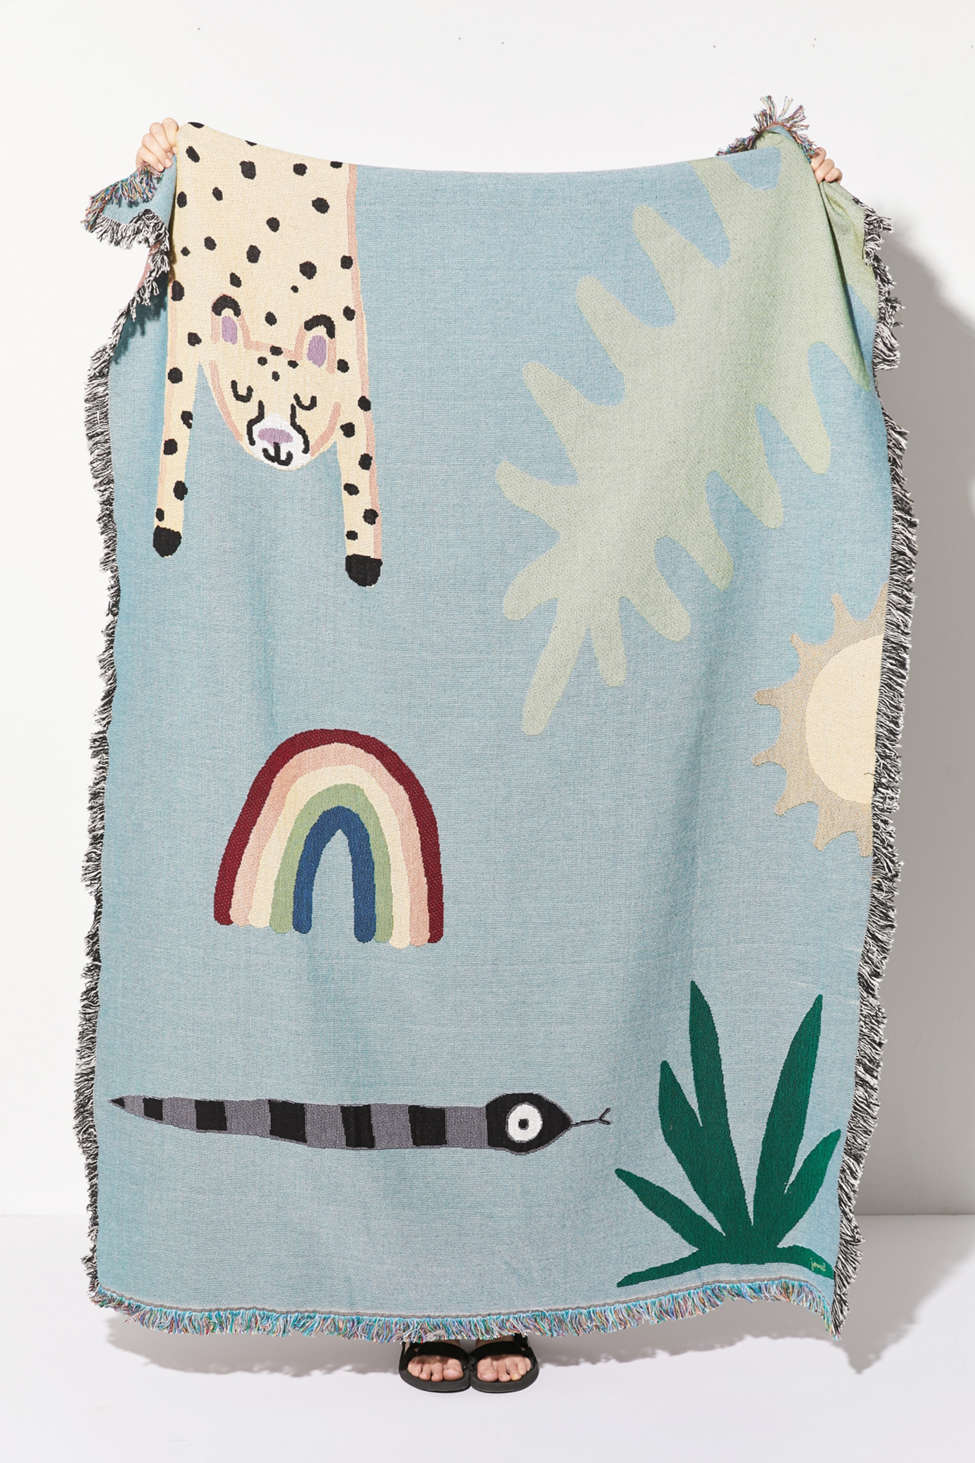 Slide View: 1: Jarmél By Jarmel For UO Happy Buddies Woven Throw Blanket